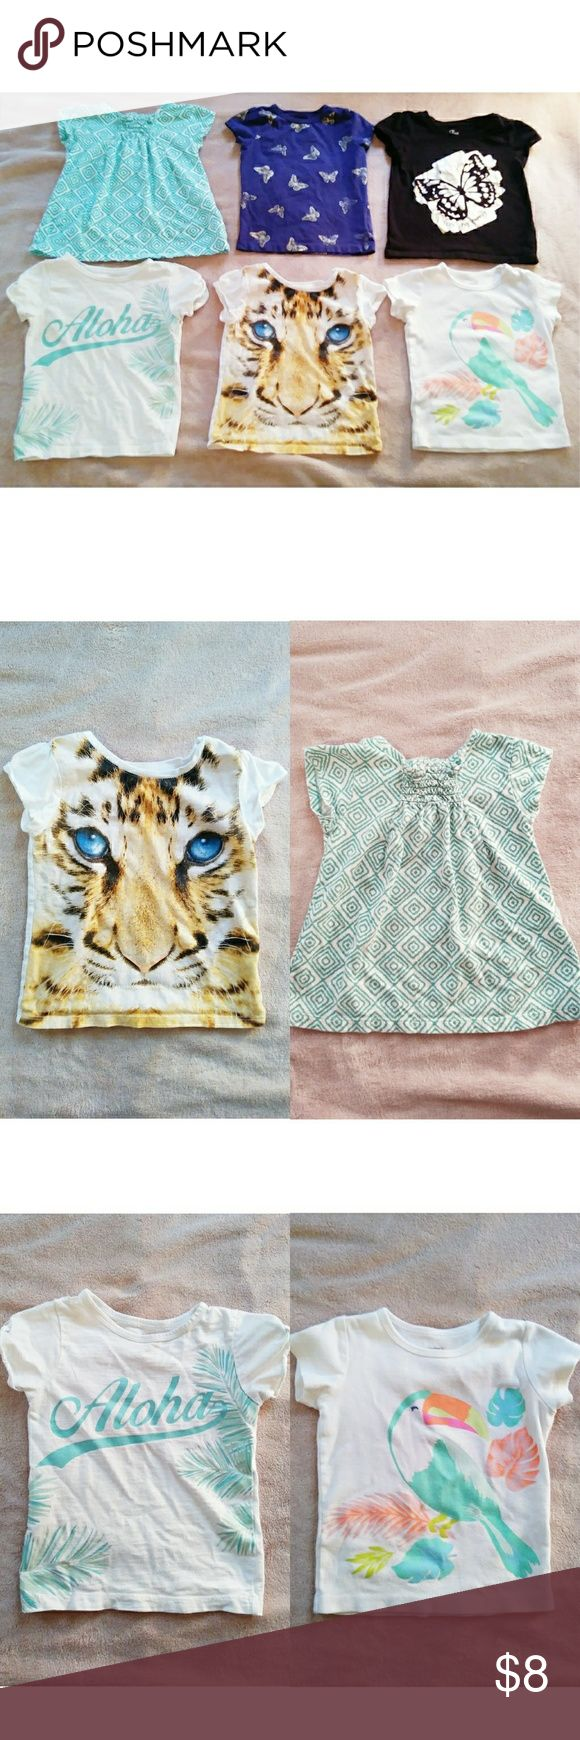 2T Girls Graphic Tees Lot 6 6x Graphic TShirys for Girls Size 2T. Shirts & Tops Tees - Short Sleeve